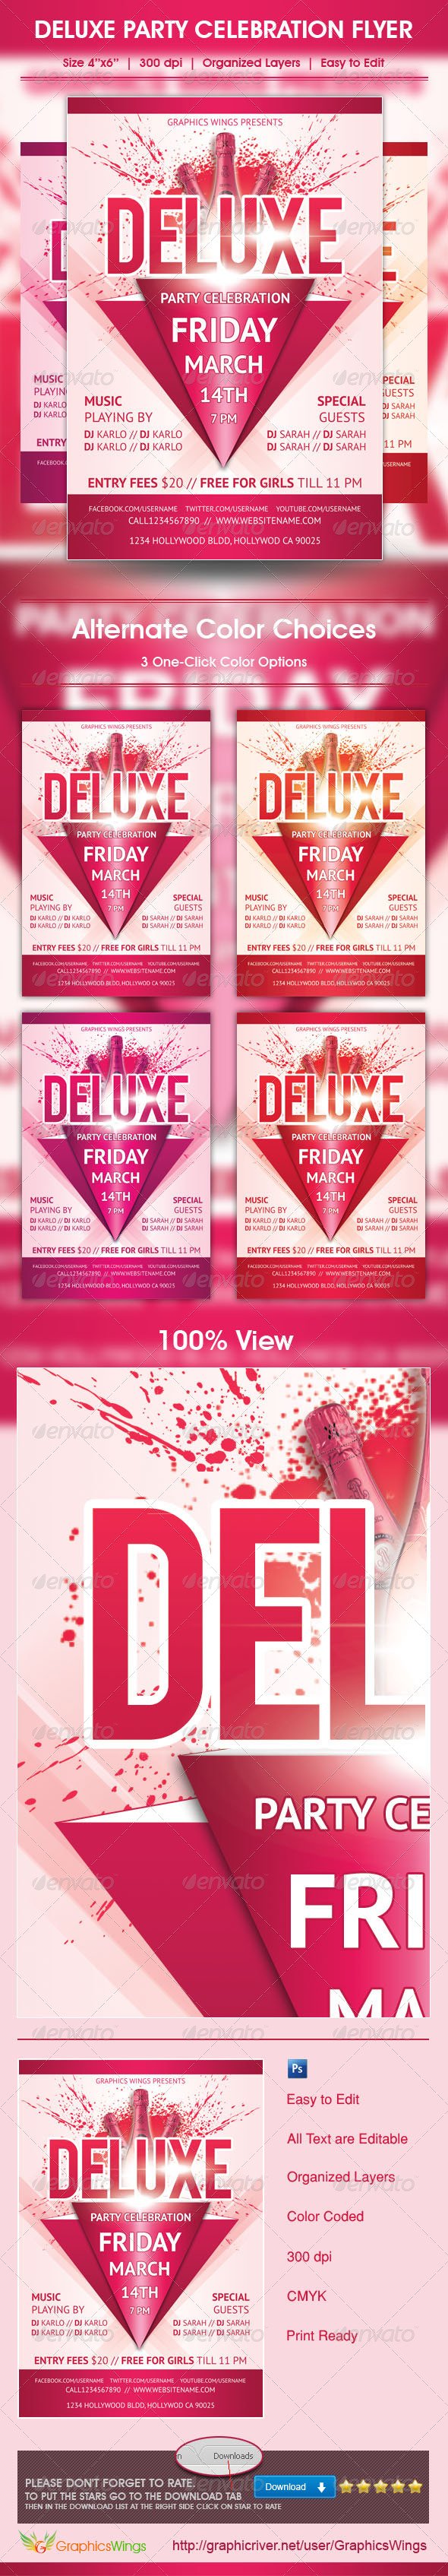 Deluxe Party Celebration Flyer Template - Clubs & Parties Events